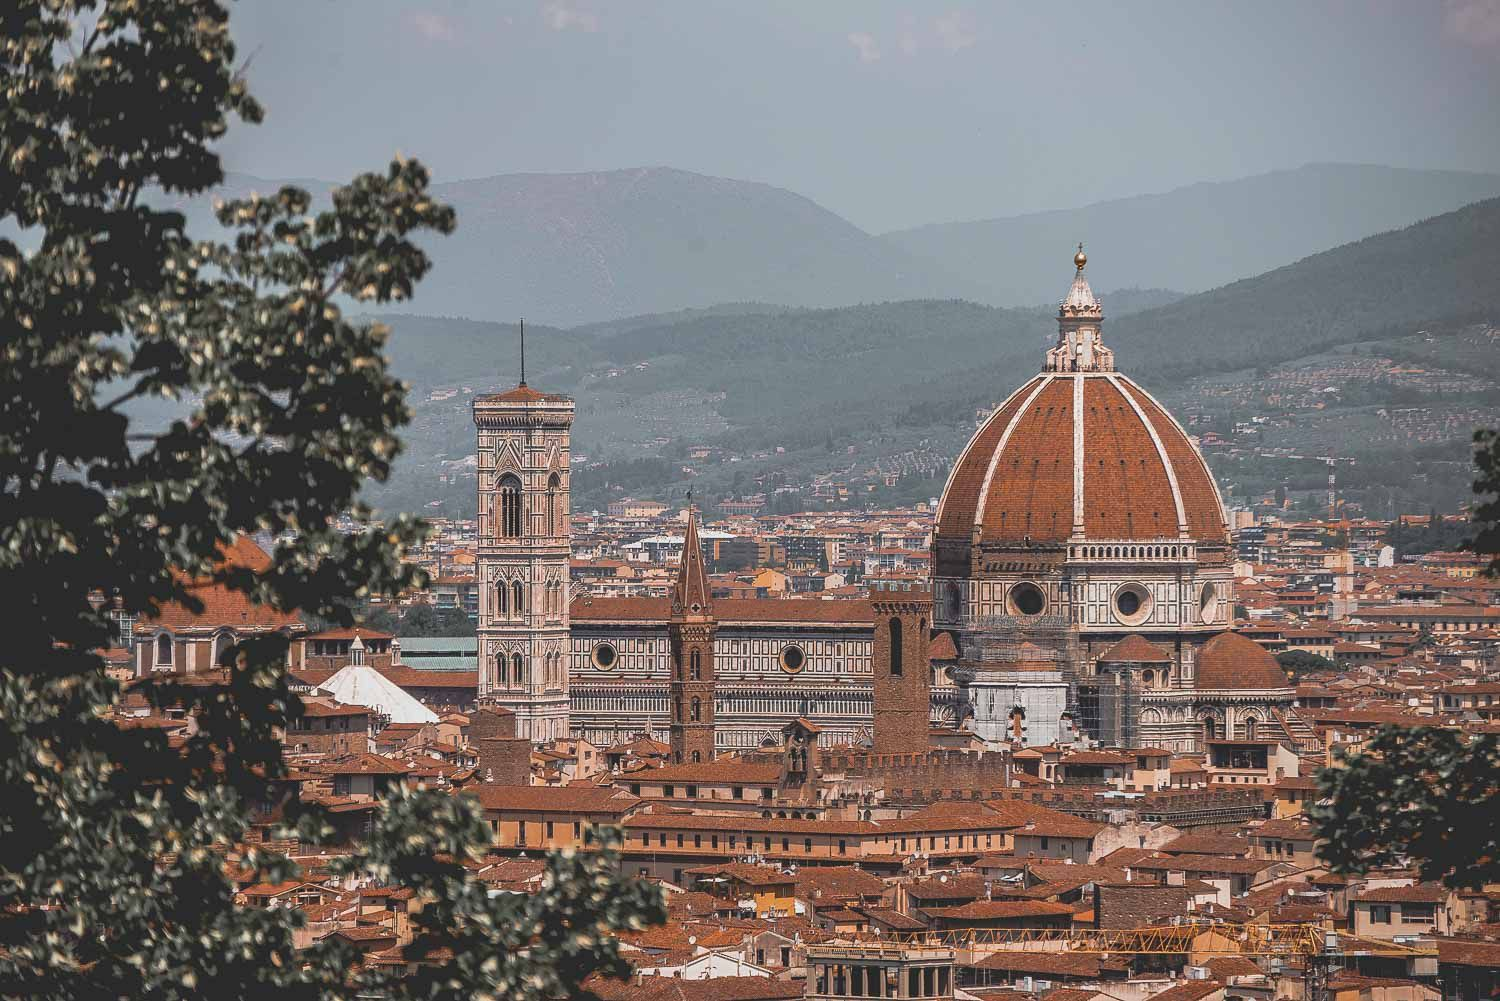 Where to stay in Florence - Best AIrbnbs